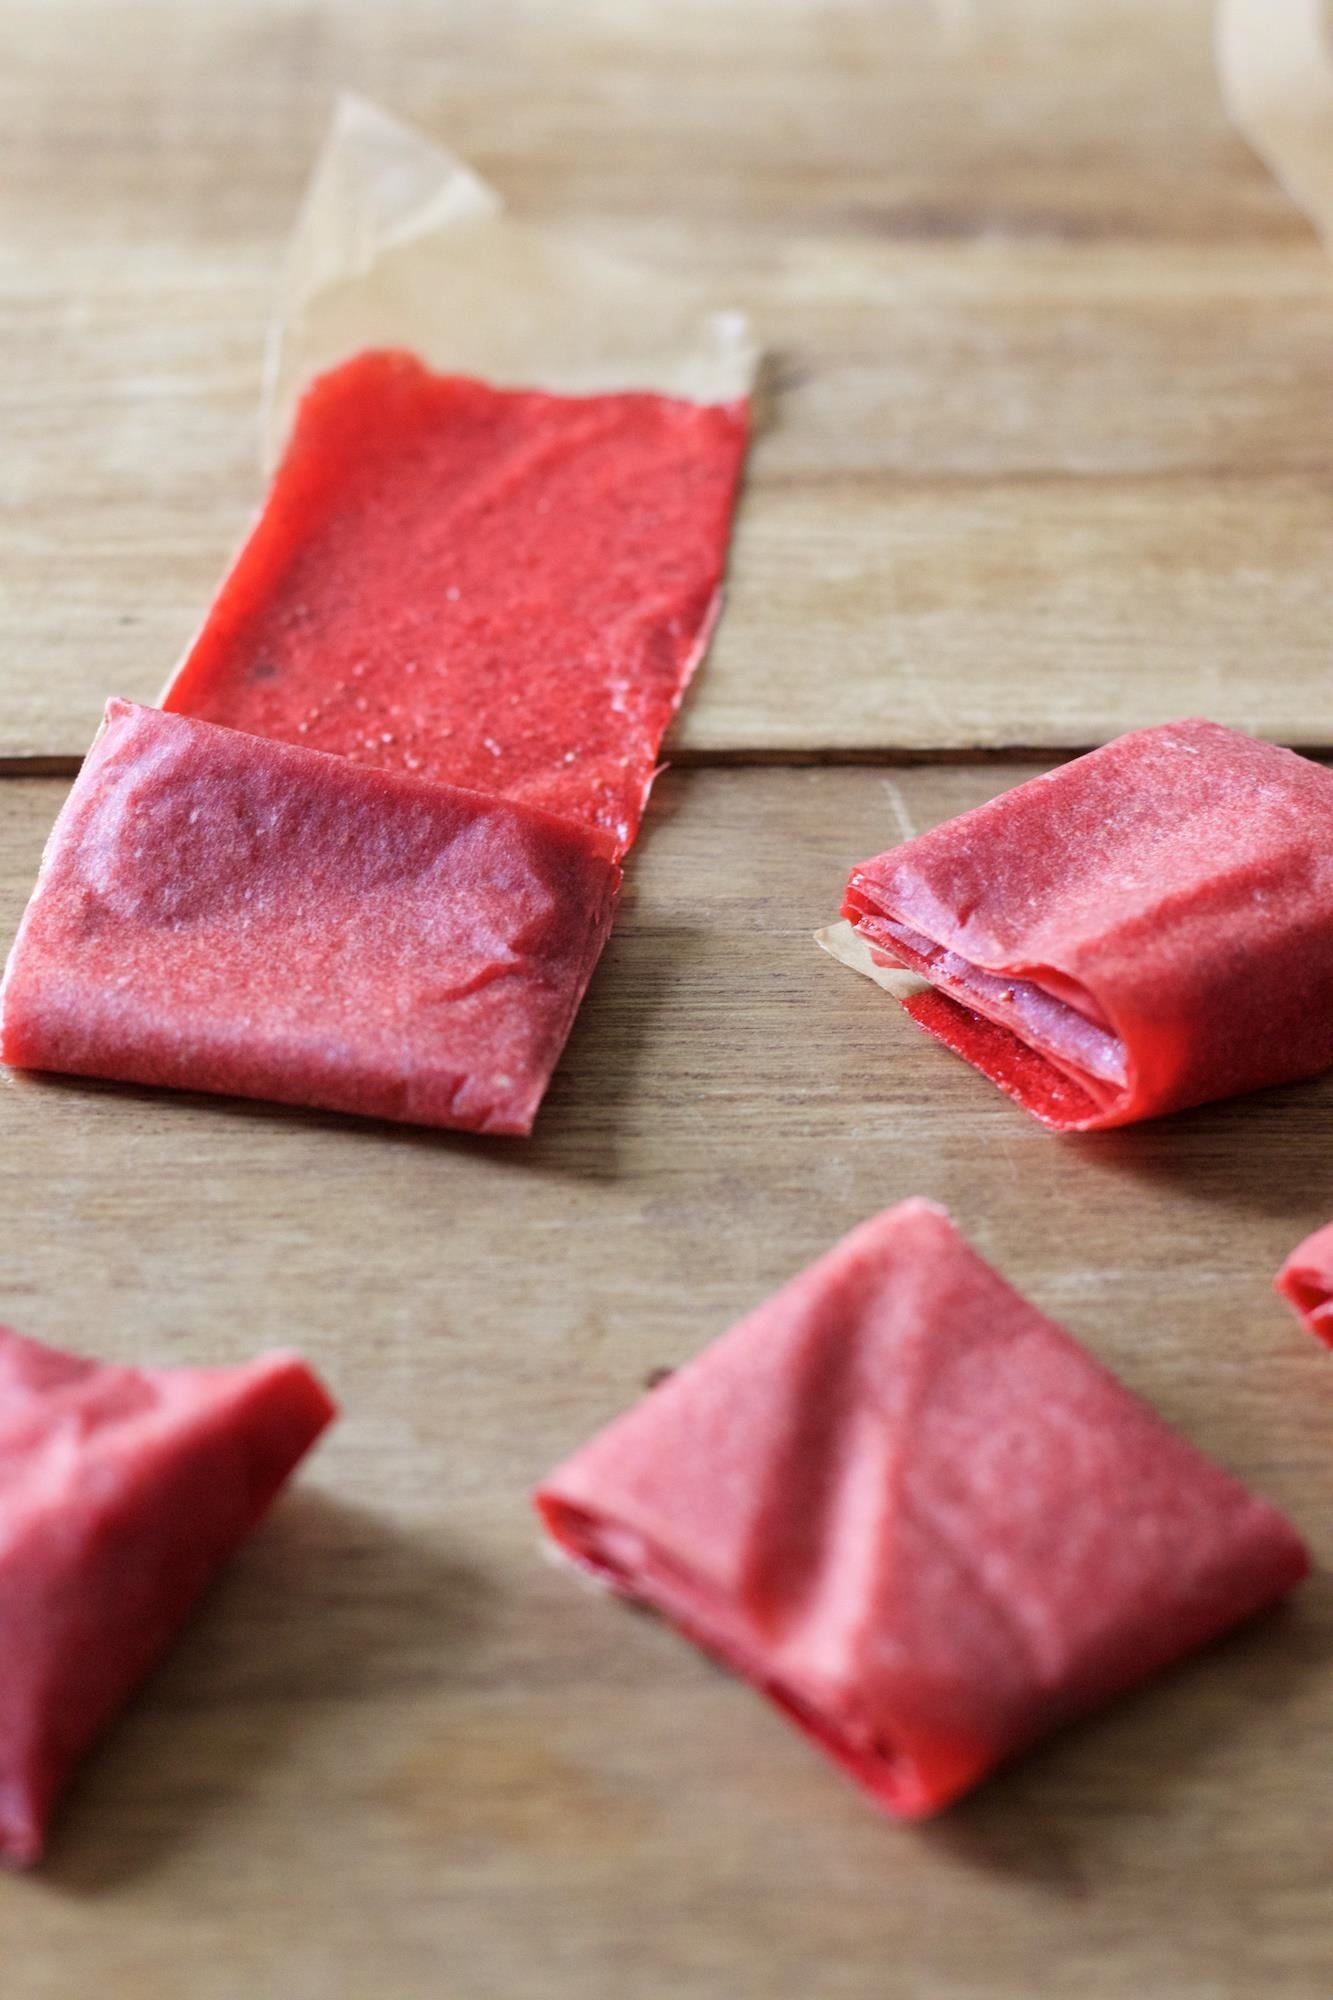 Send Your Kids Back to School with These DIY Fruit Roll-Ups